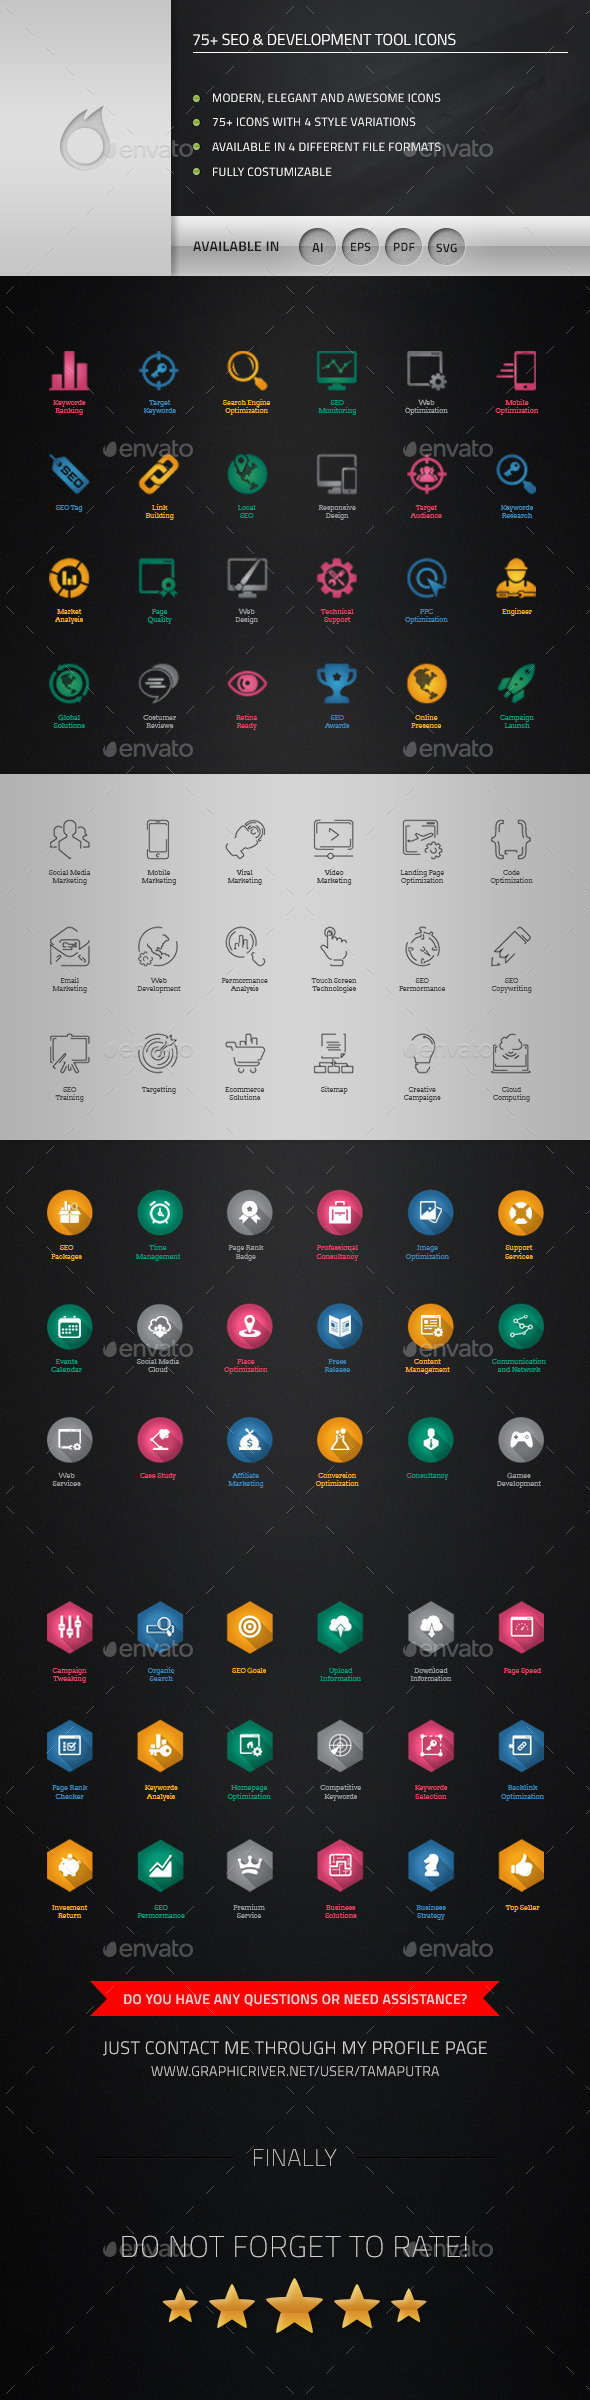 GraphicRiver 75& SEO and Development Tool Icons 11739373